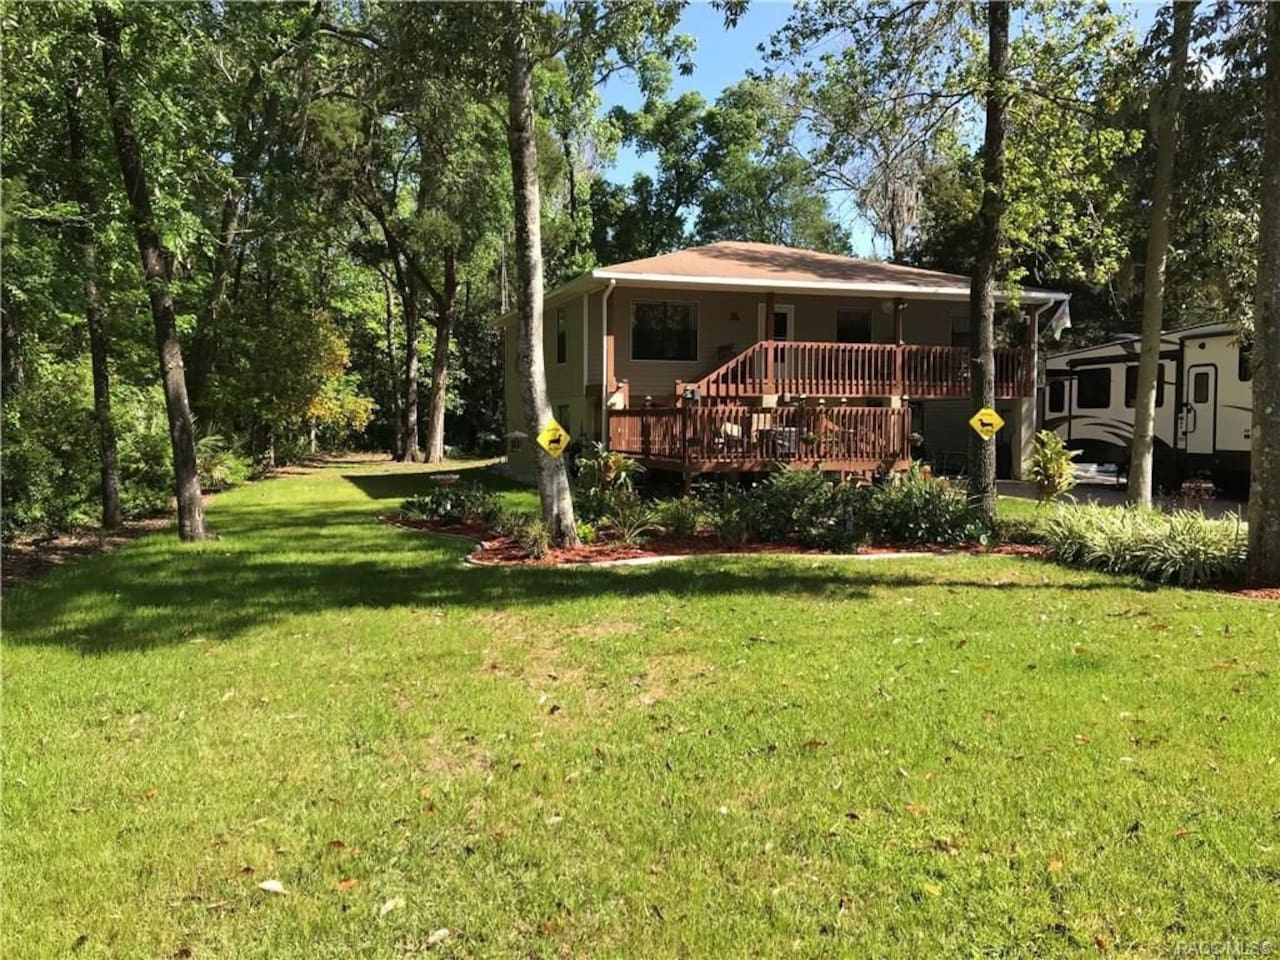 Street view! Quiet home on a secluded, wooded street.  Cozy ground floor apartment with a private entrance. Very close to Three Sister's Springs and manatee viewing!